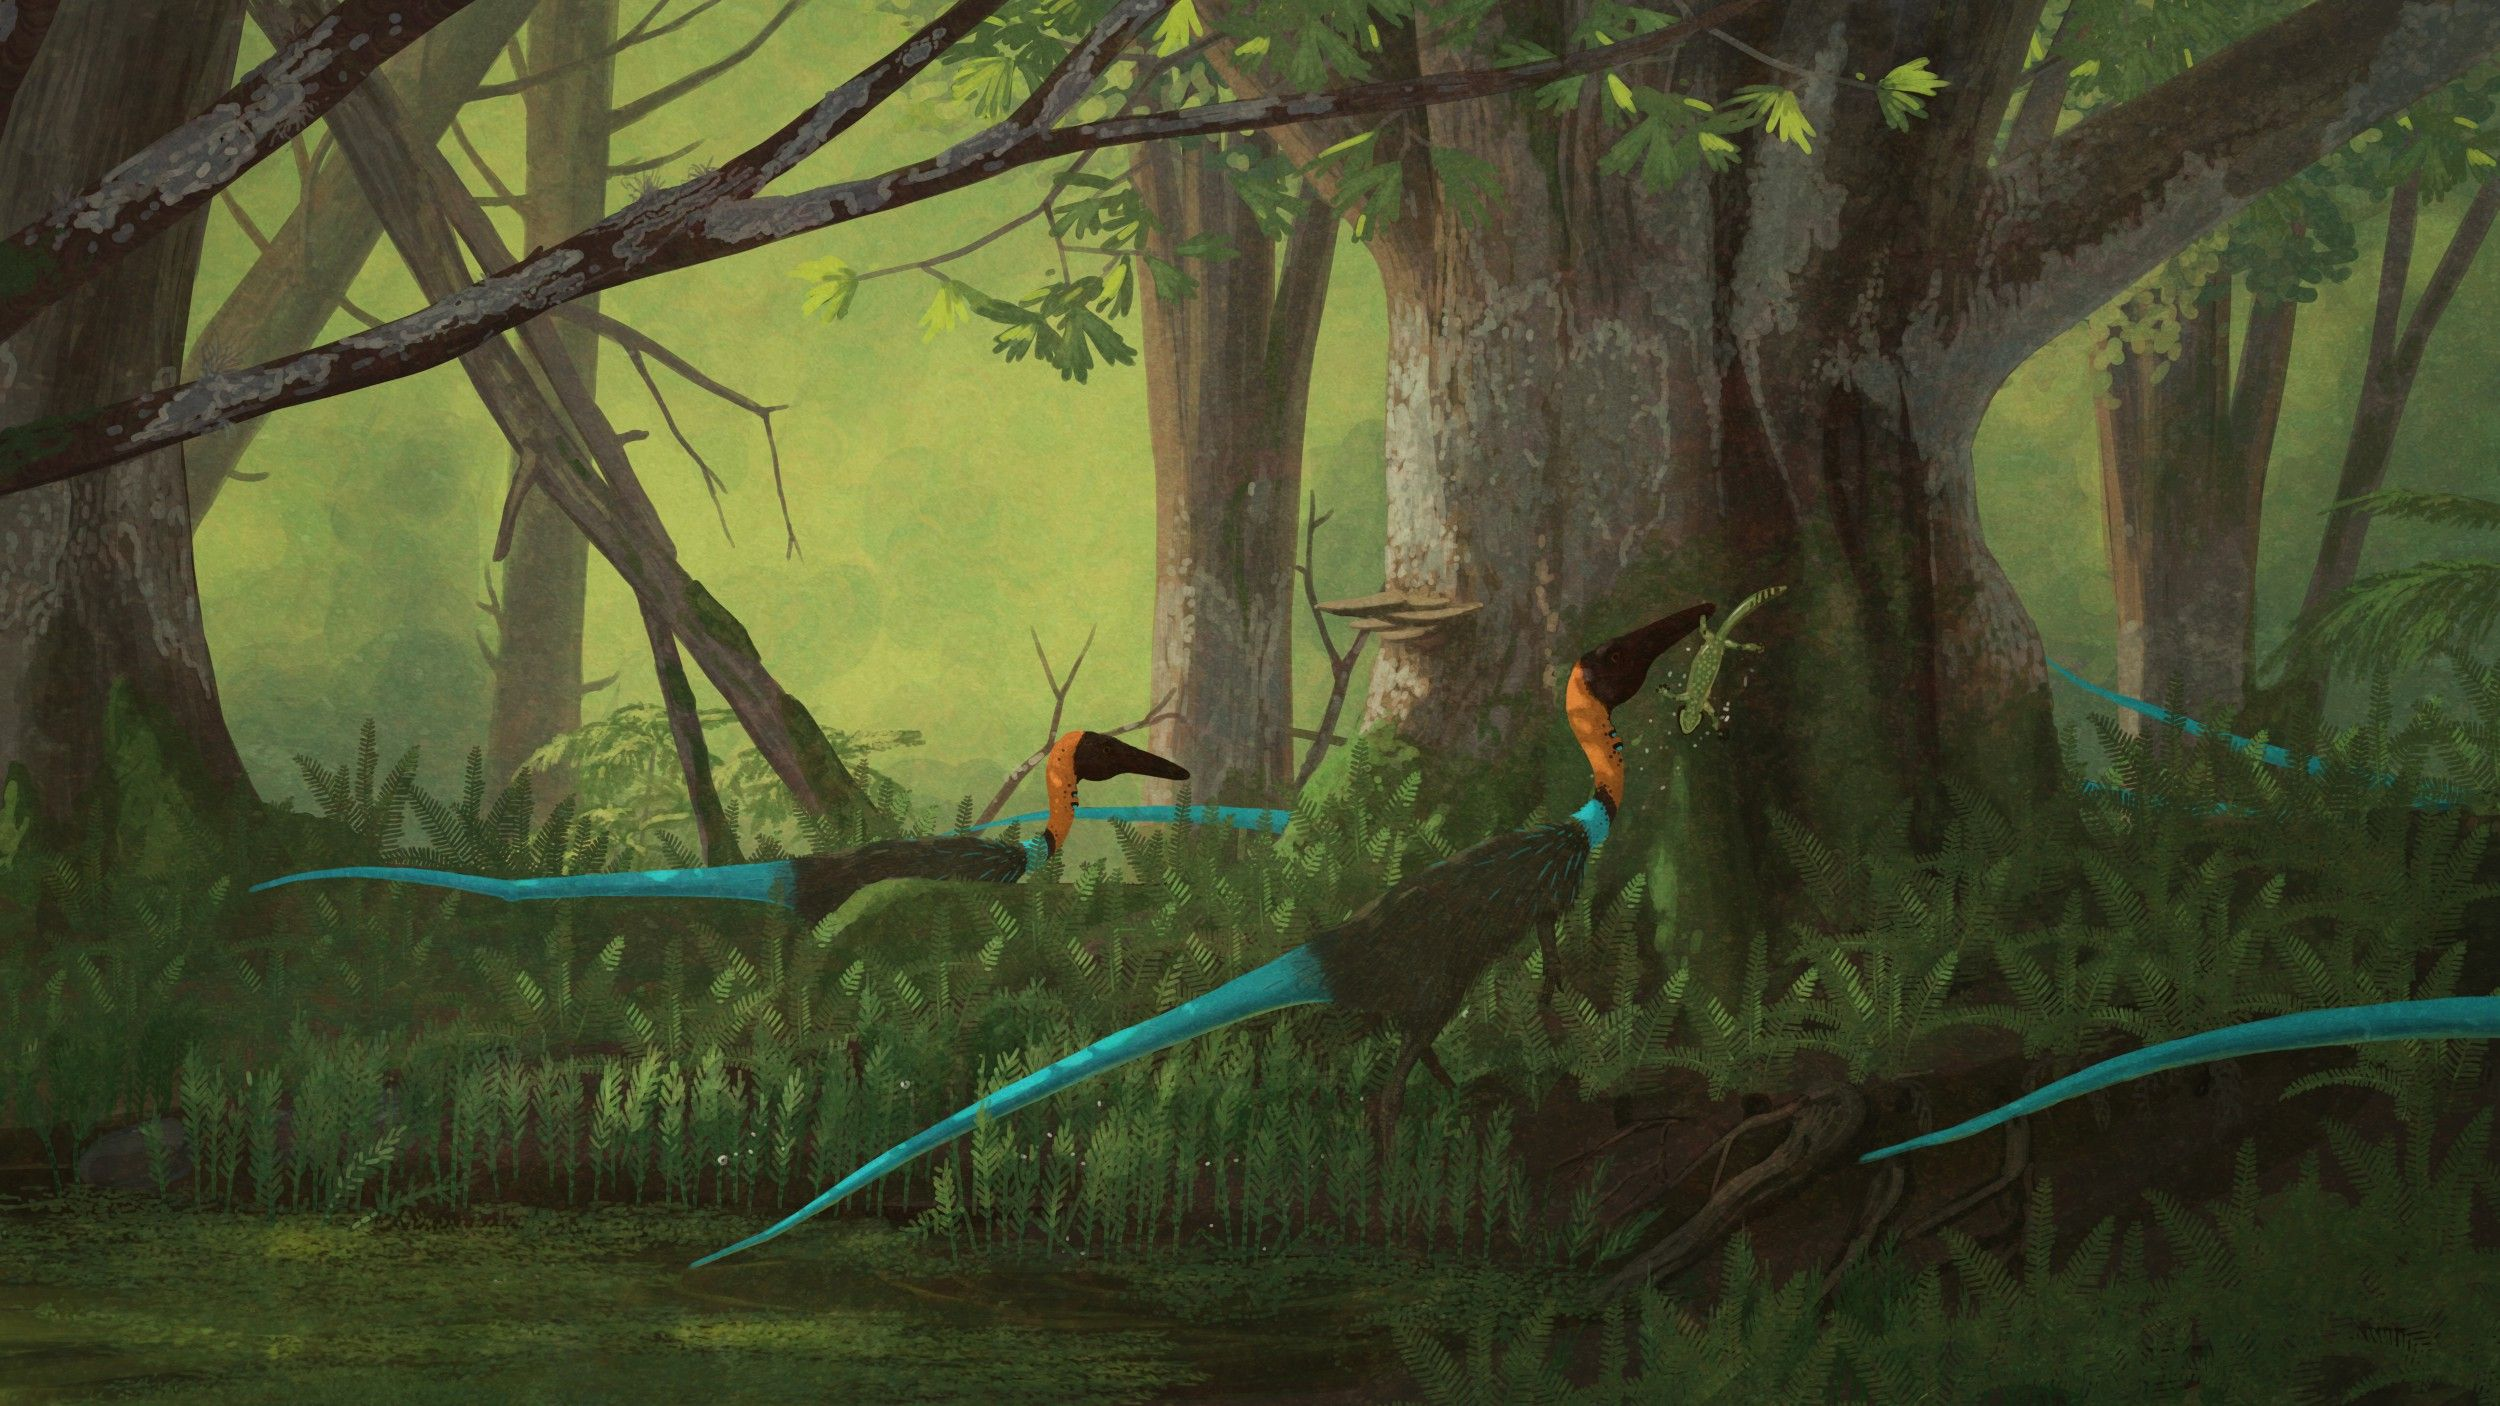 Coelophysis bauri.  Coelophysis was a small(ish) theropod dinosaur from the Late Triassic. Here they are, eating tasty temnospondyls. Mmmm... temnospondyl.